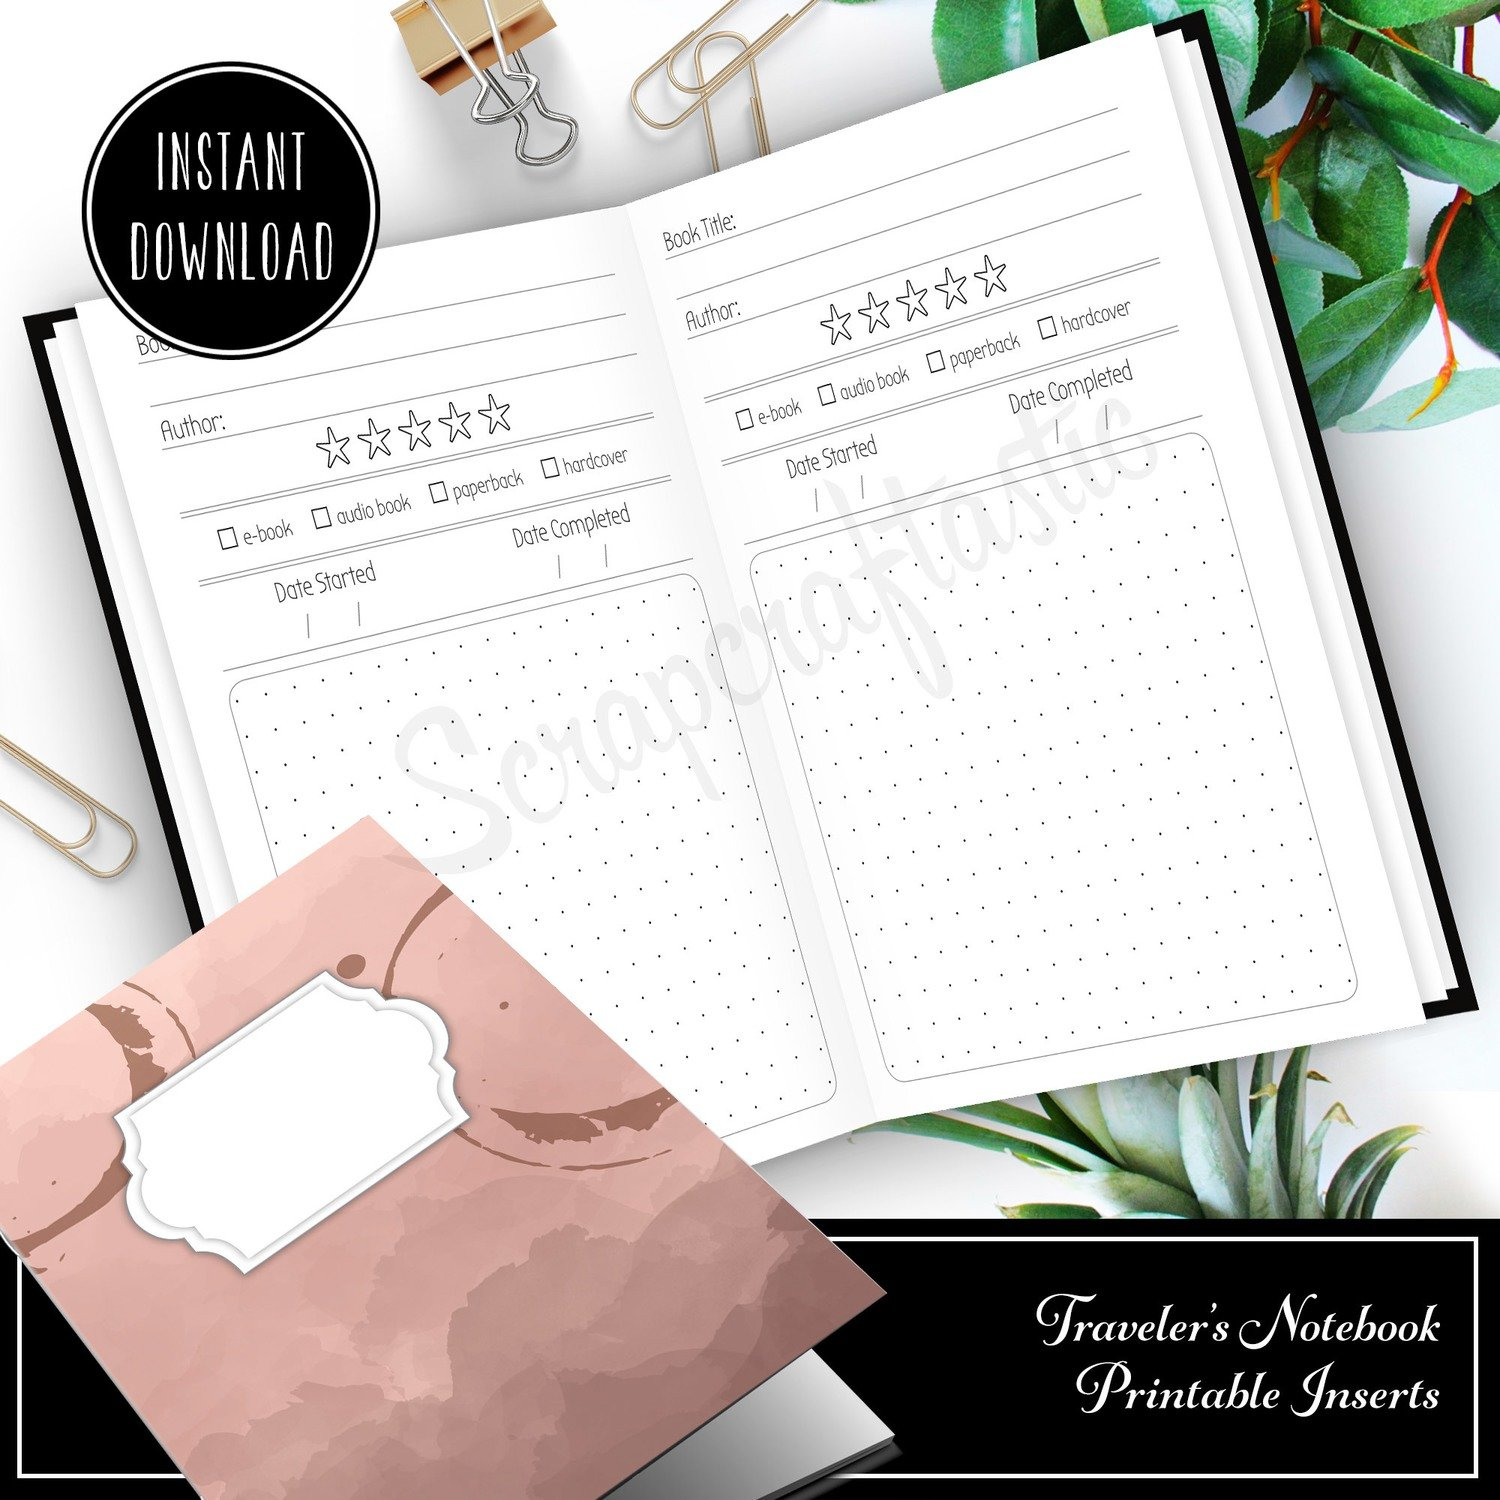 PERSONAL TN - Book / Reading Log and Review Personal Size Traveler's Notebook Printable Insert